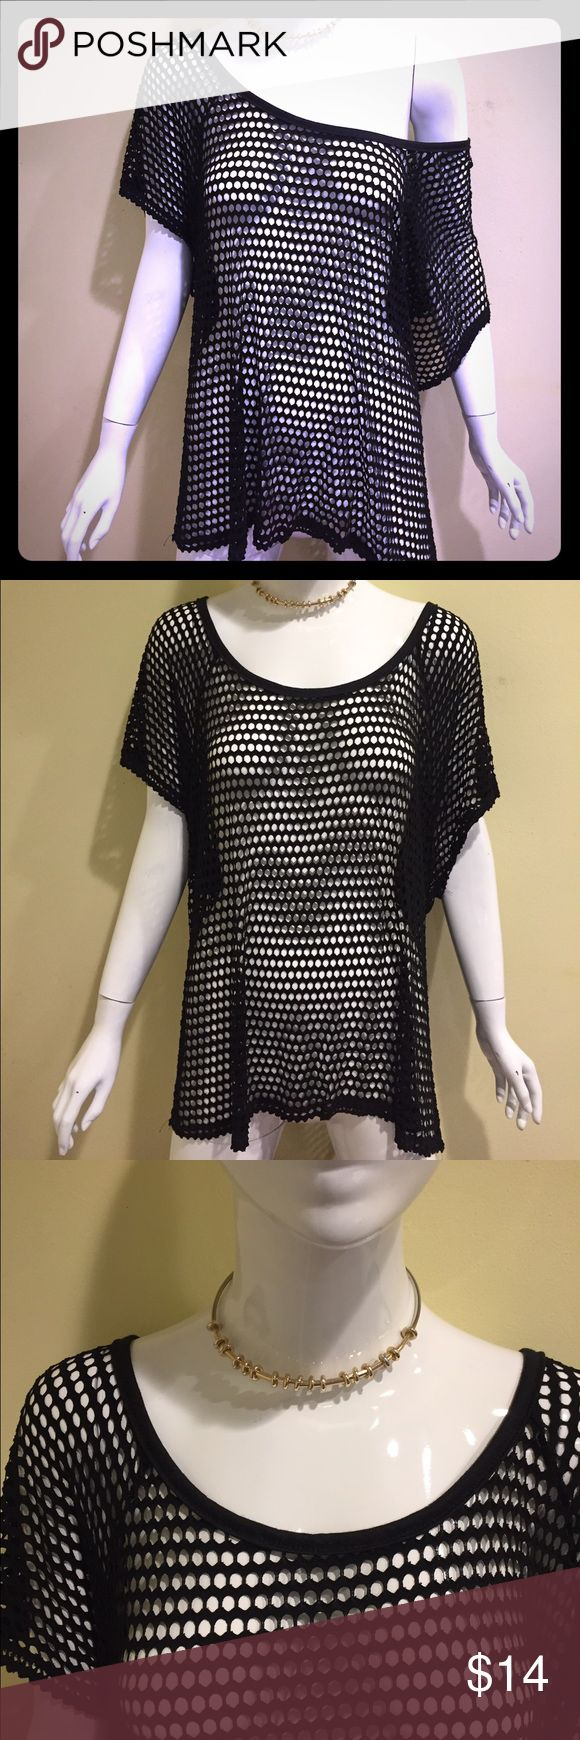 Fishnet top Love this top!  black fishnet top, can also be used off the shoulders. Only have 2 in stock Lavish Tops Tank Tops